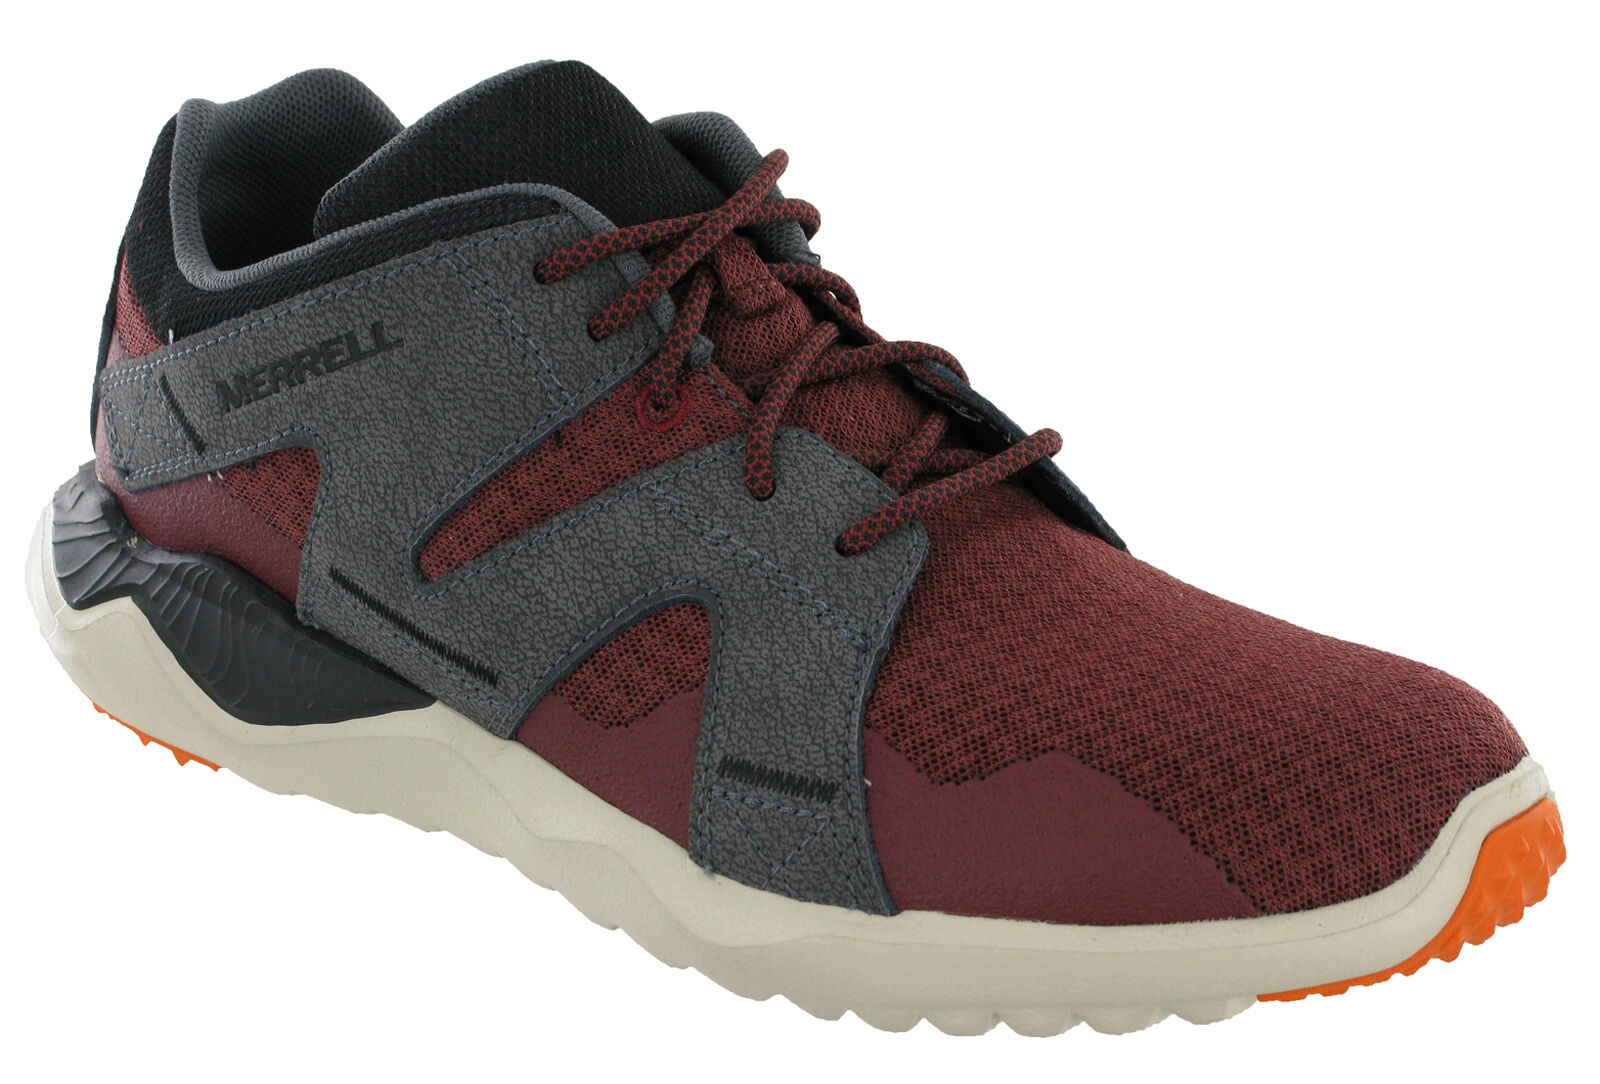 Merrell 1SIX8 Mesh Trainers Mens Lightweight Breathable Sports Shoes J91351